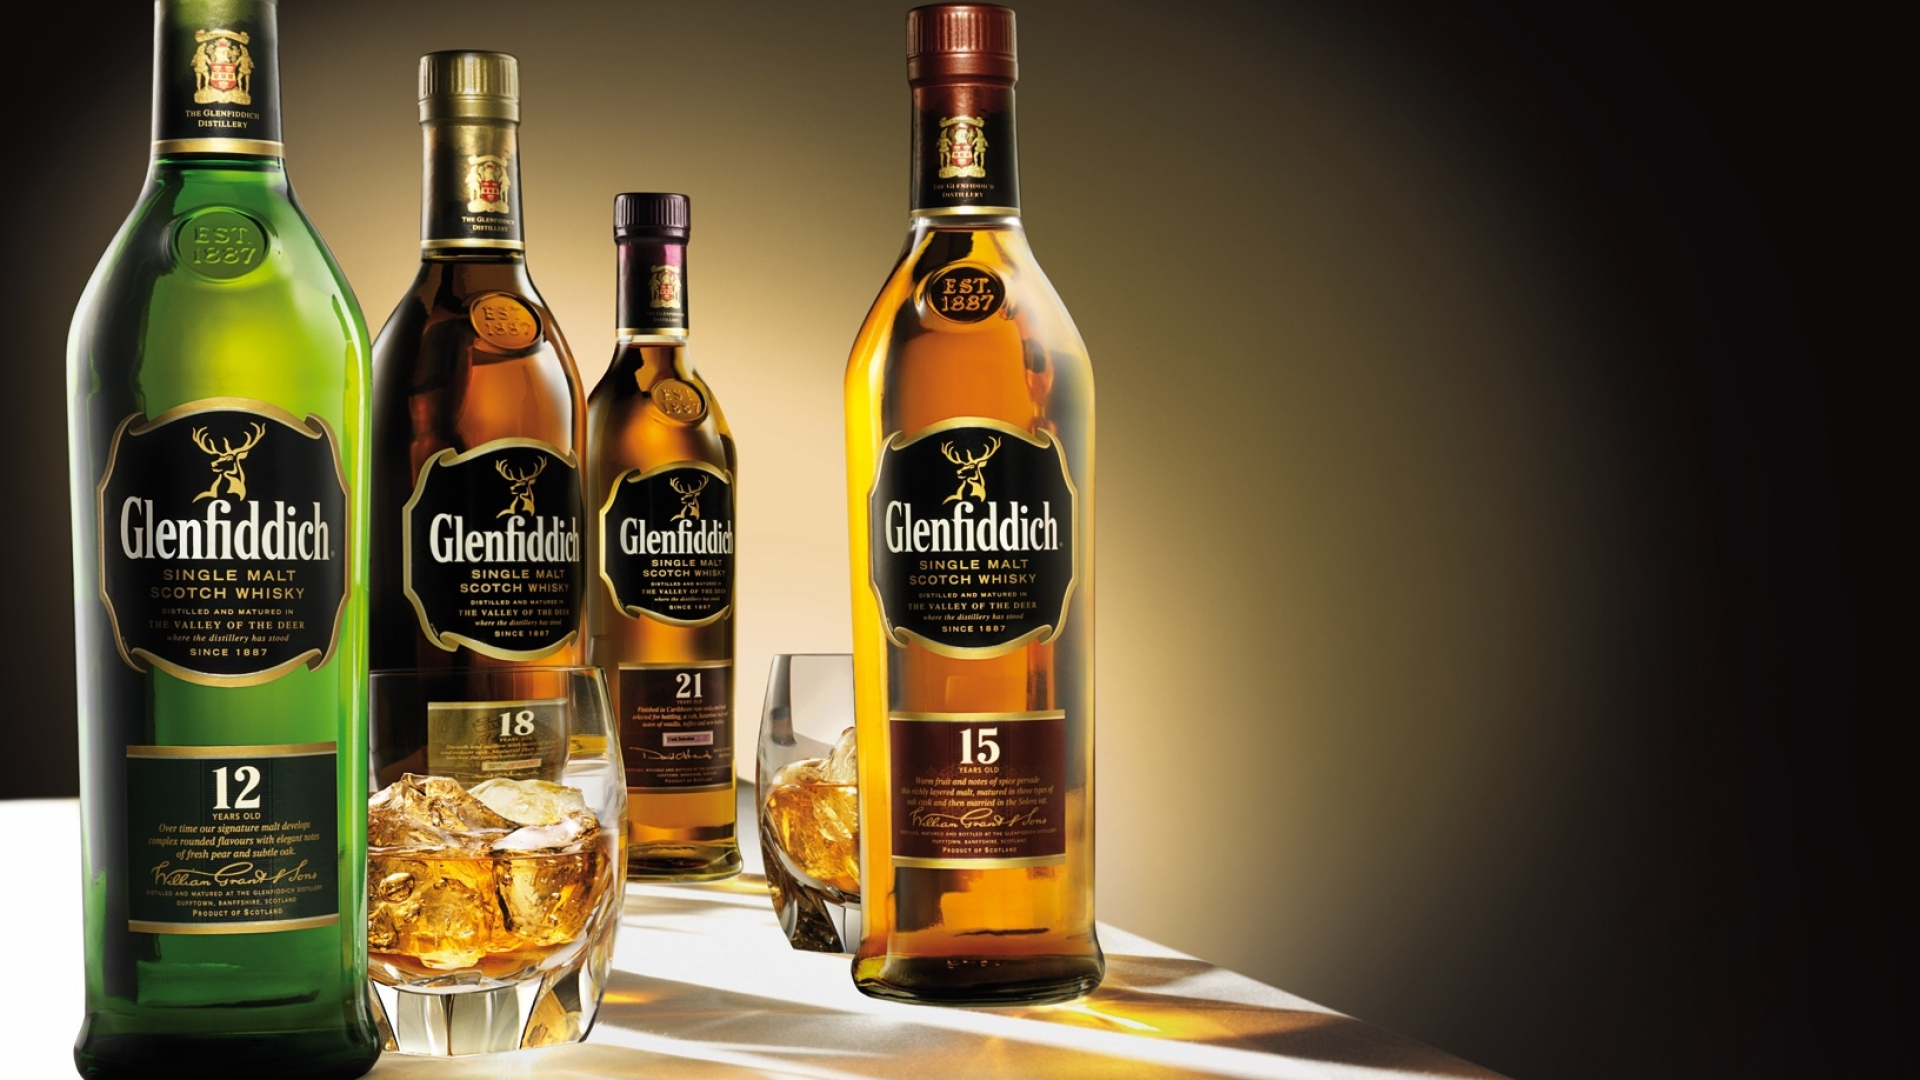 glenfiddich-special-reserve-yo-single-malt-scotch-whiskey-http-www-u-org-glenfid-wallpaper-wpc9005528